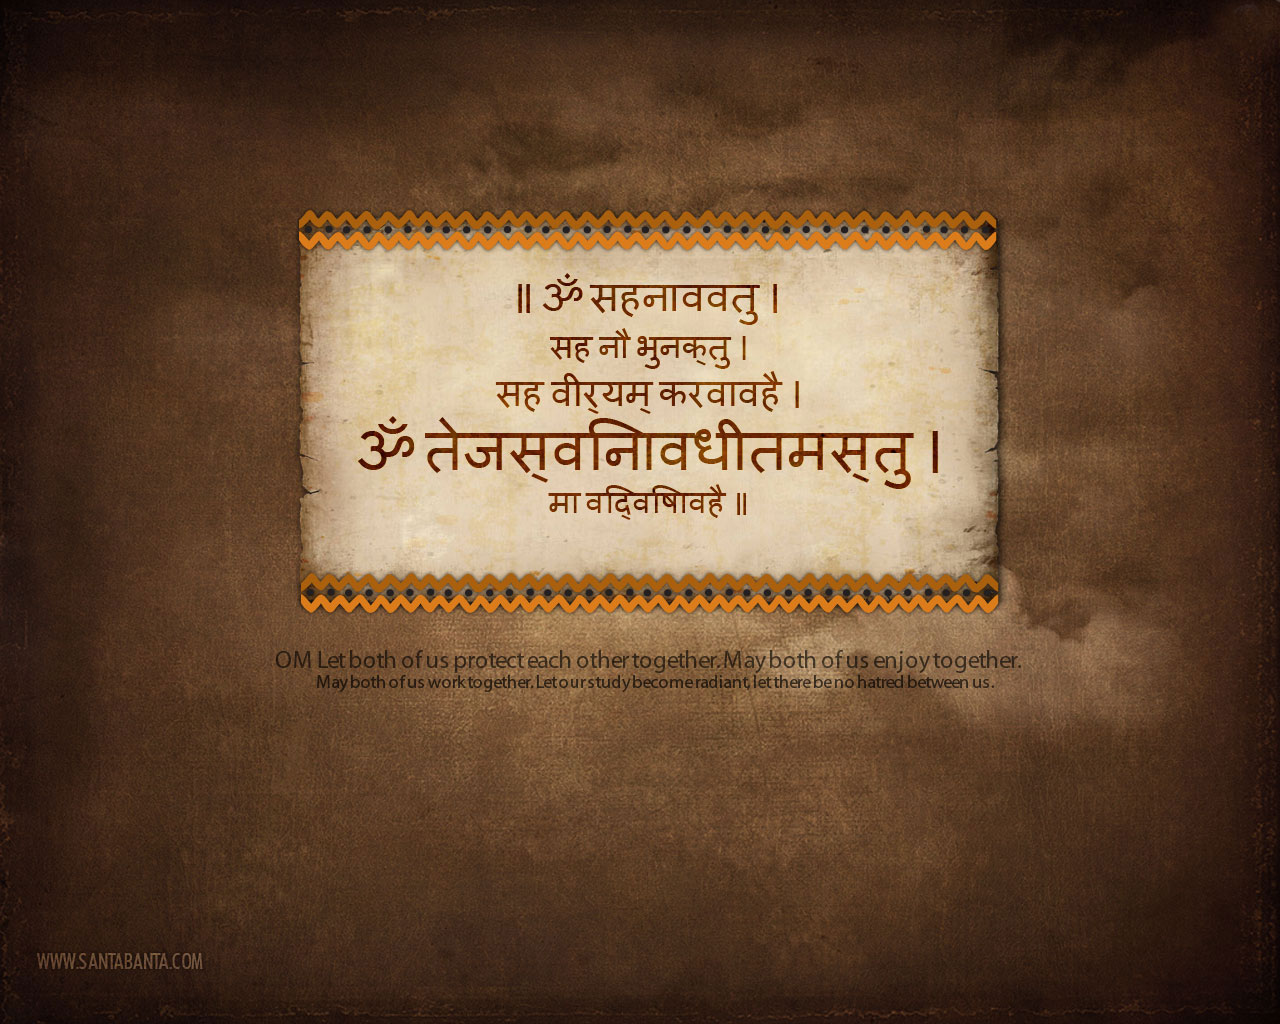 Vedic mantras for android apk download.